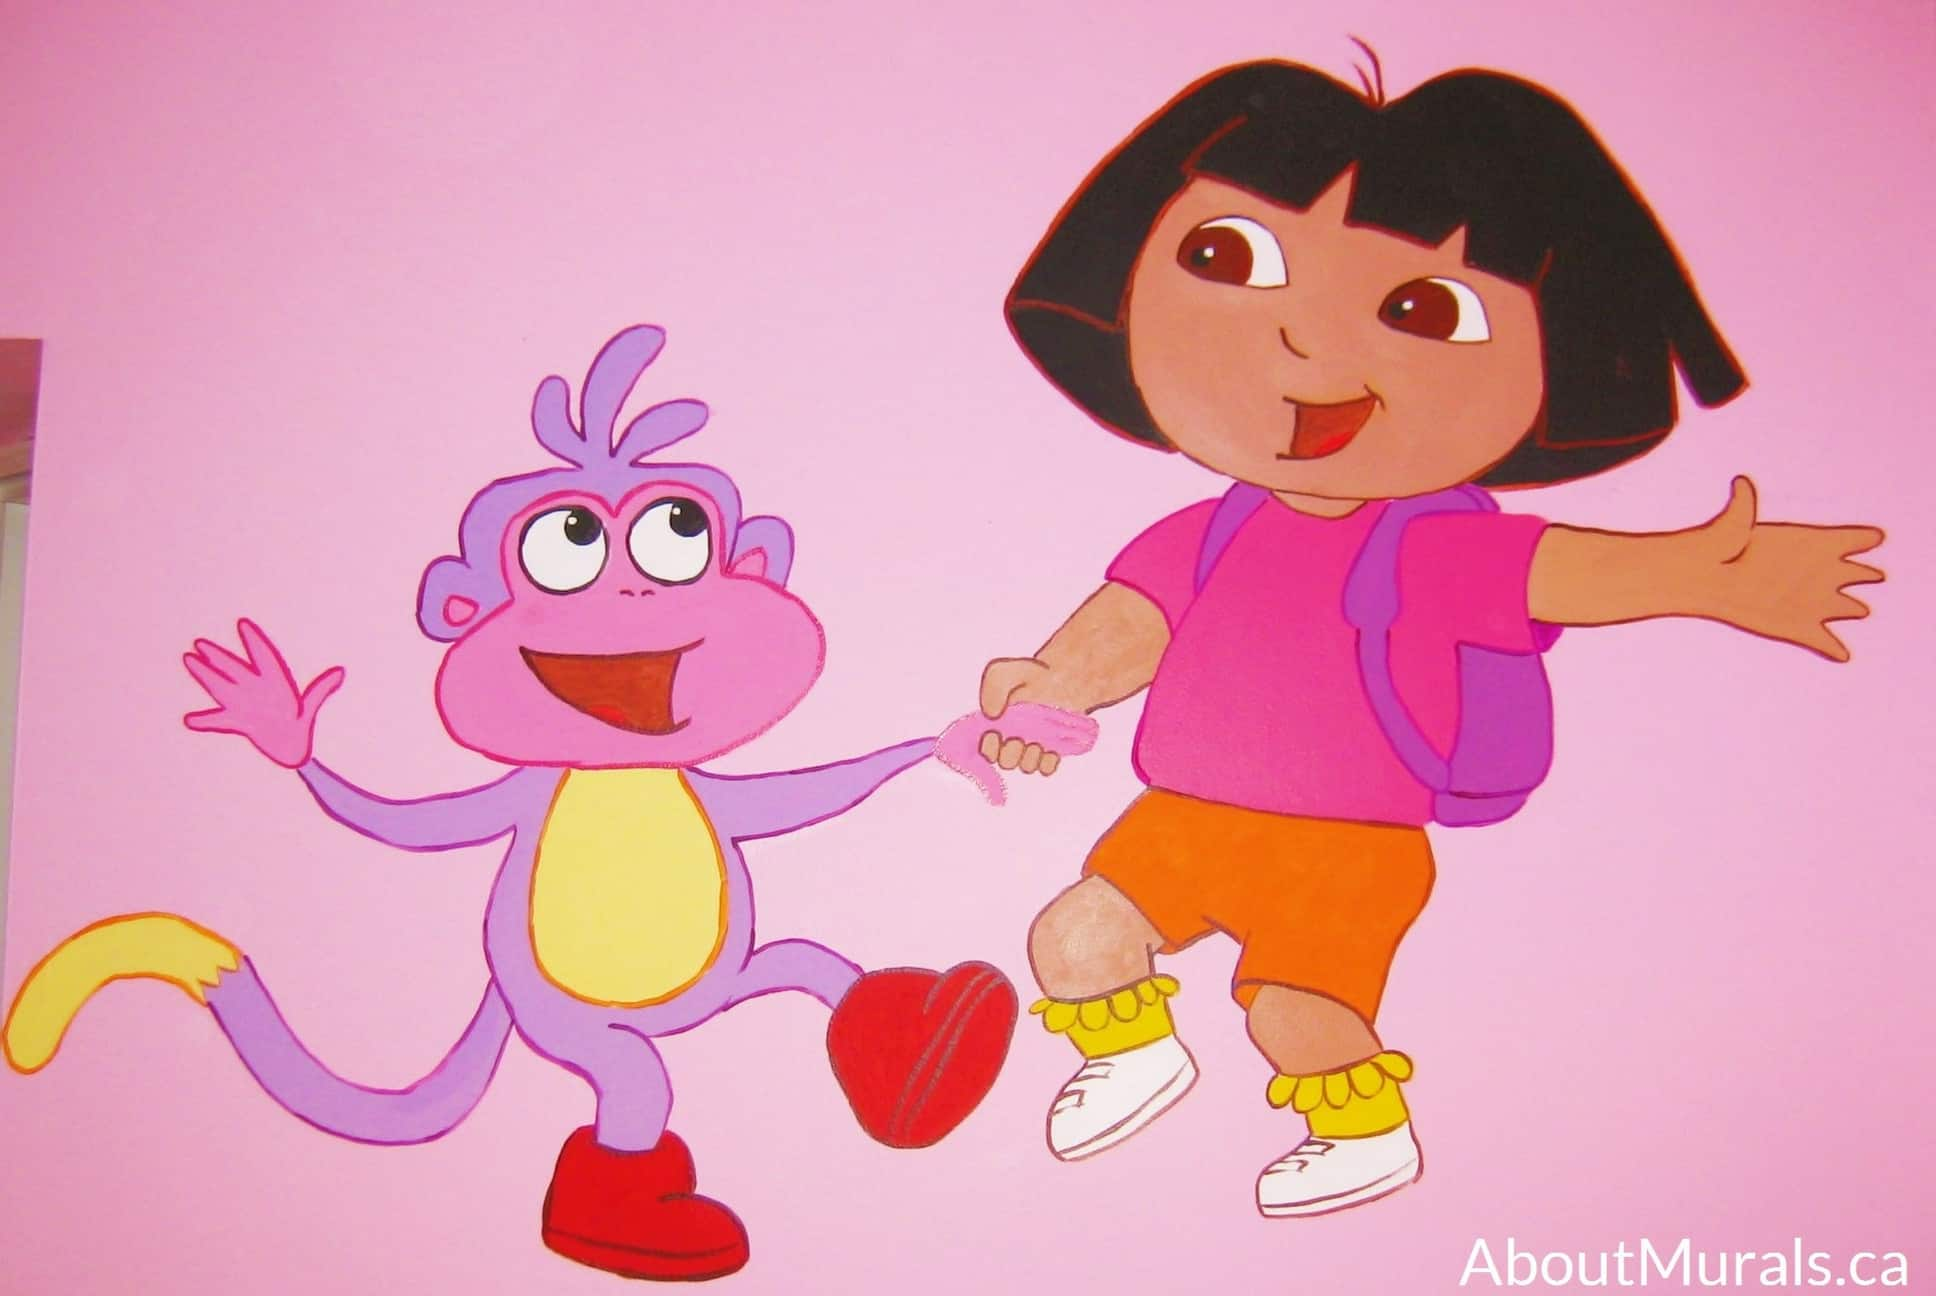 A kids wall mural featuring Dora the Explorer and Boots